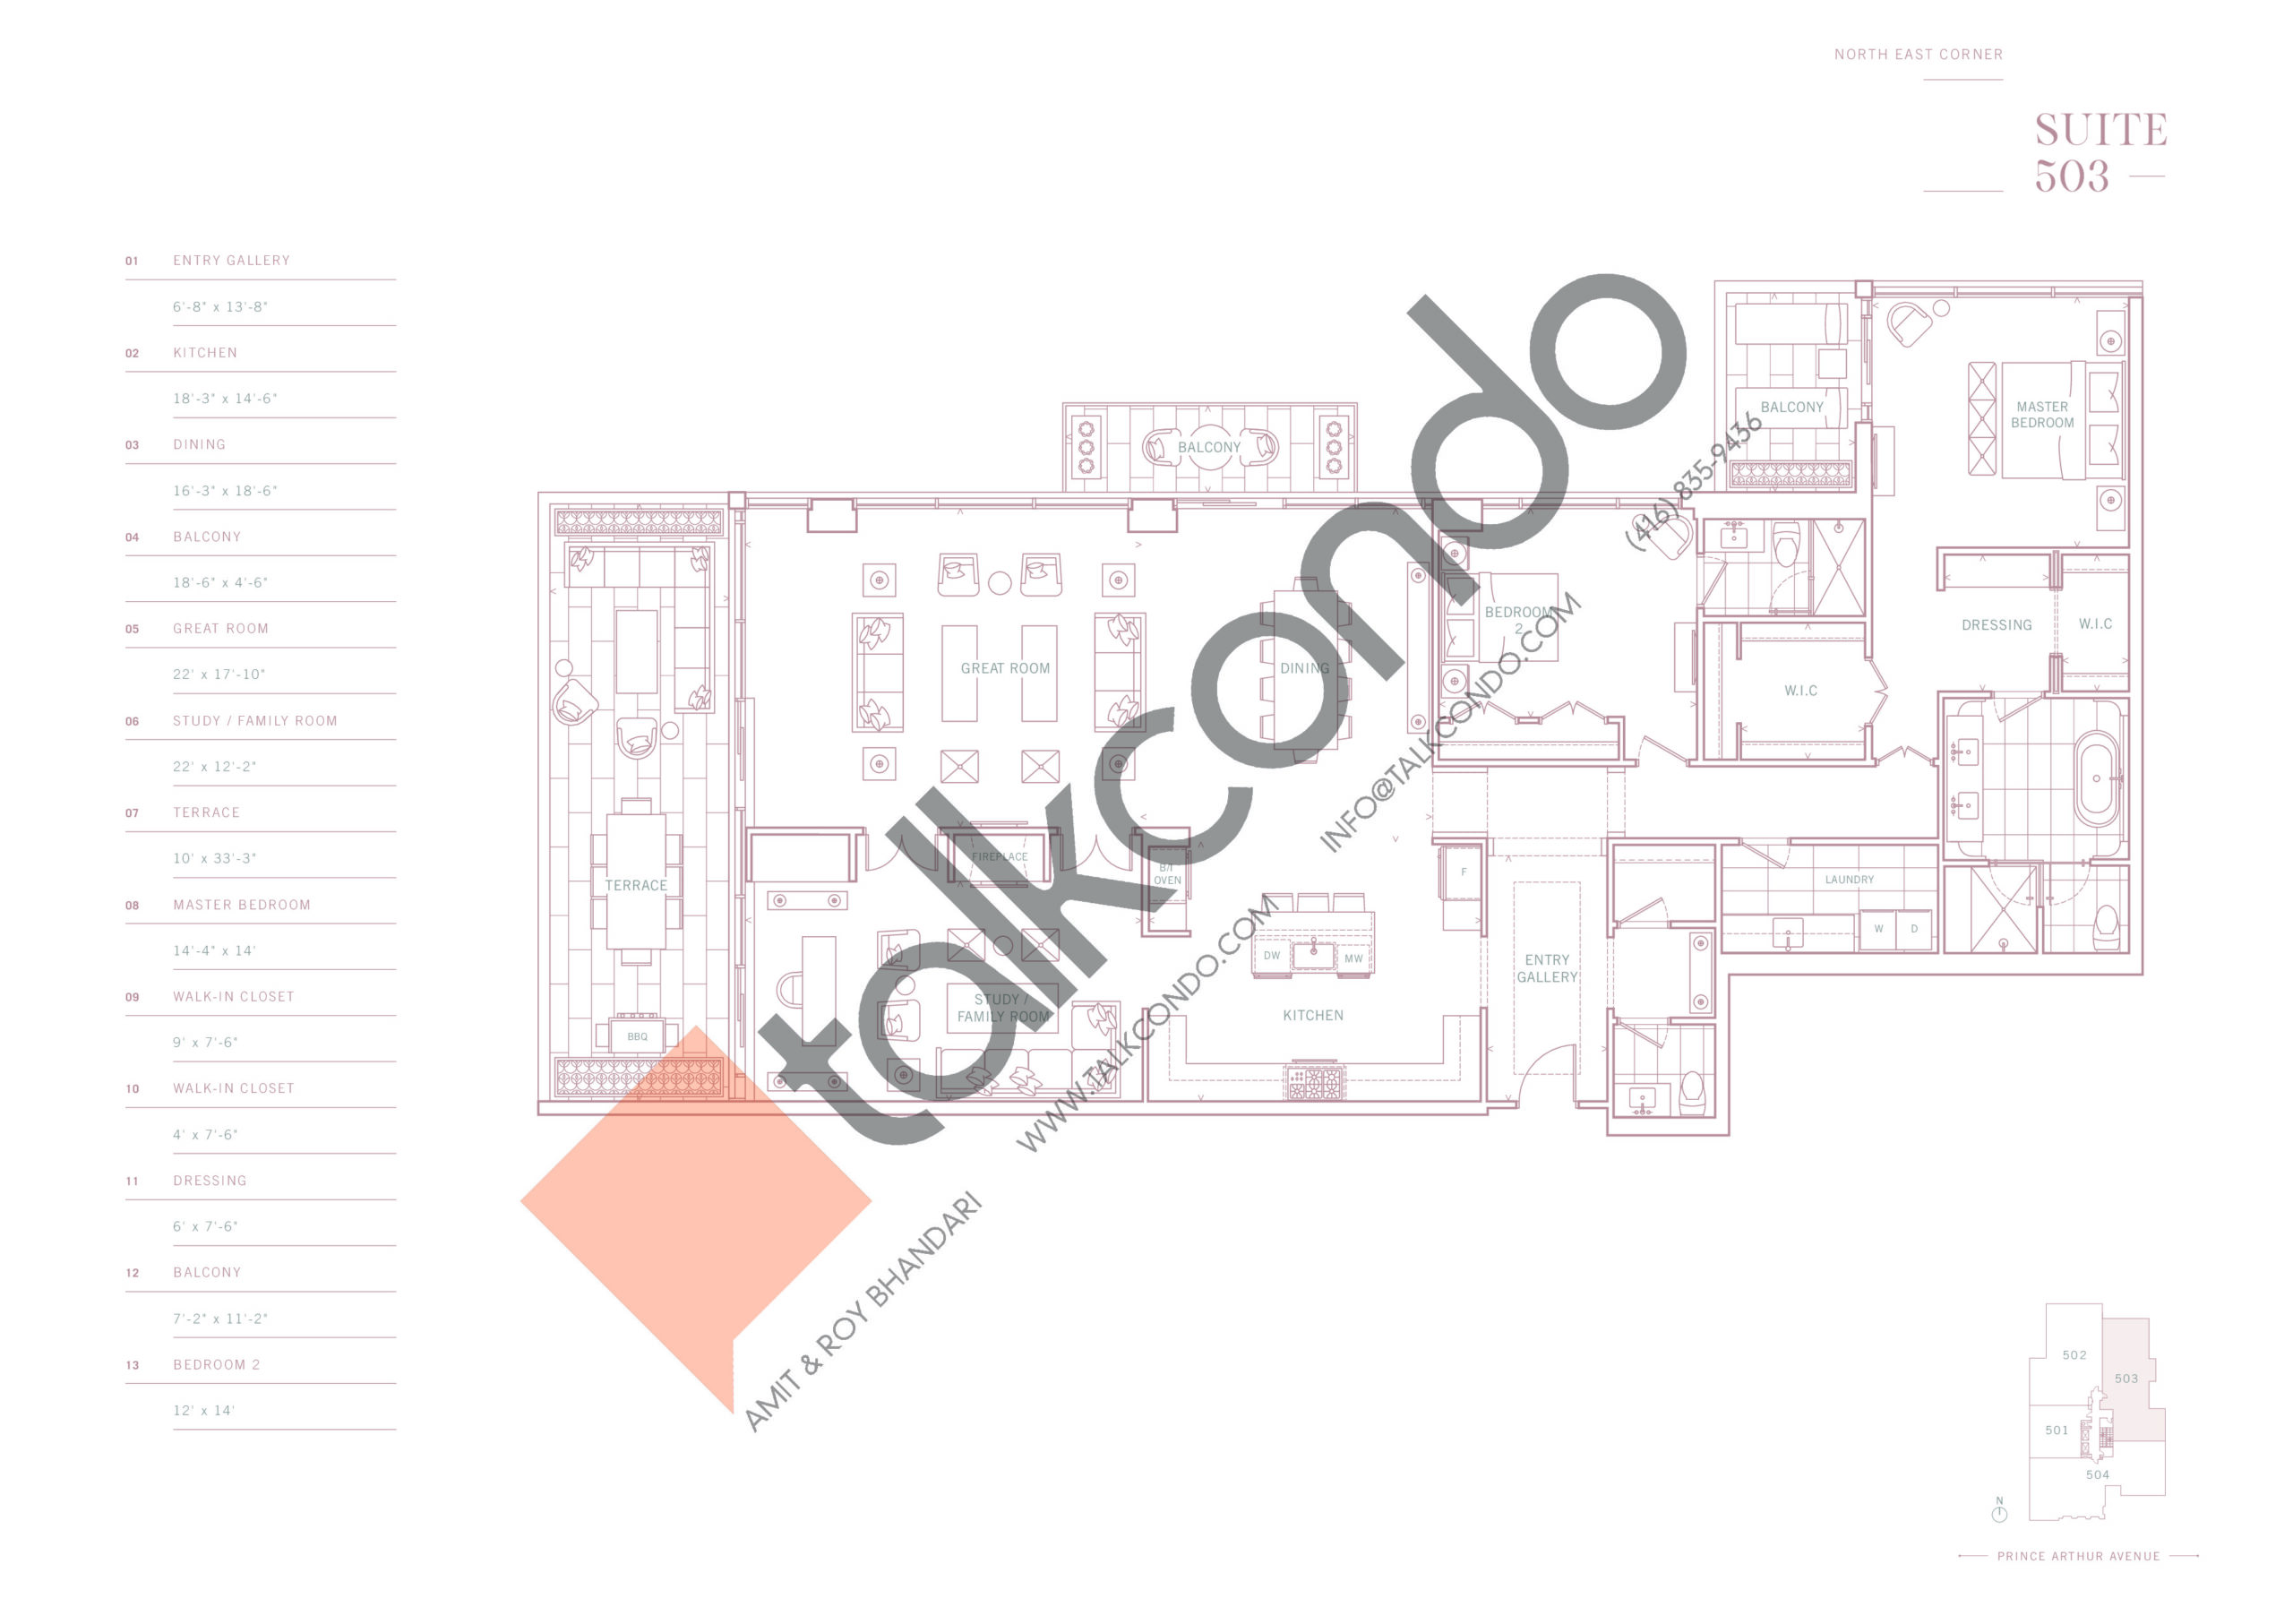 Suite 503 Floor Plan at 10 Prince Arthur Condos - 2735 sq.ft